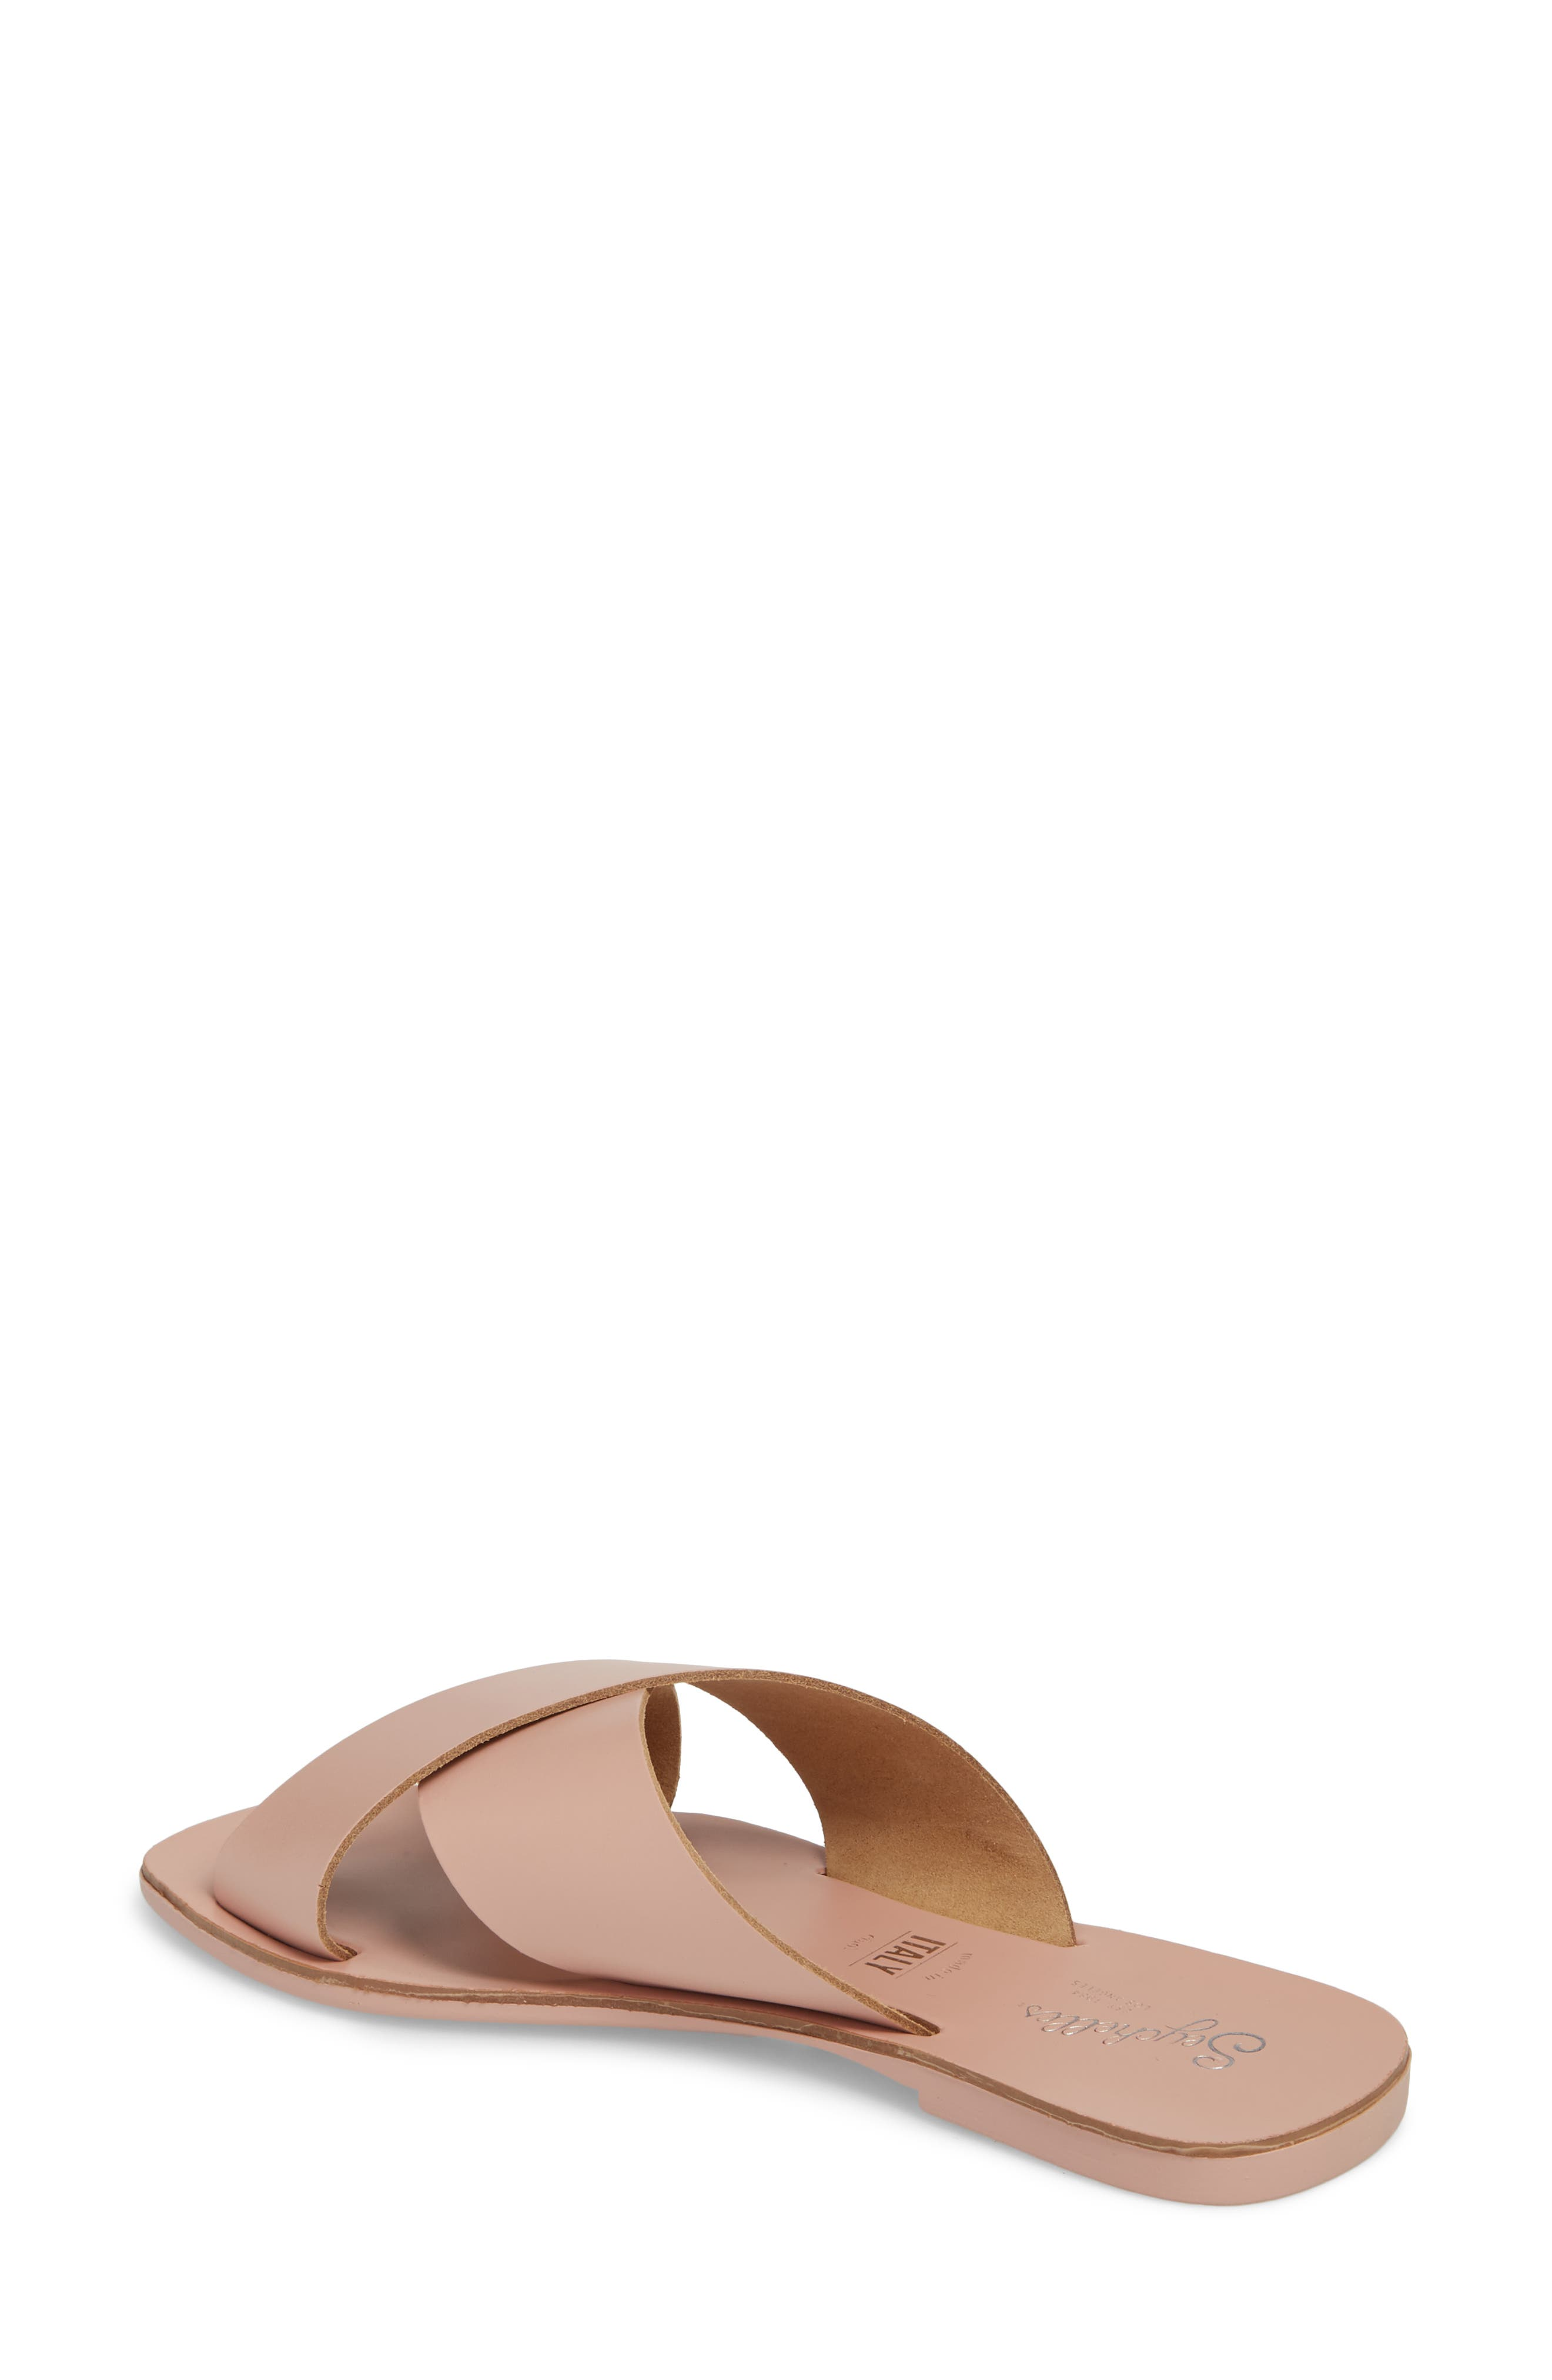 Total Relaxation Slide Sandal,                             Alternate thumbnail 2, color,                             Pink Leather